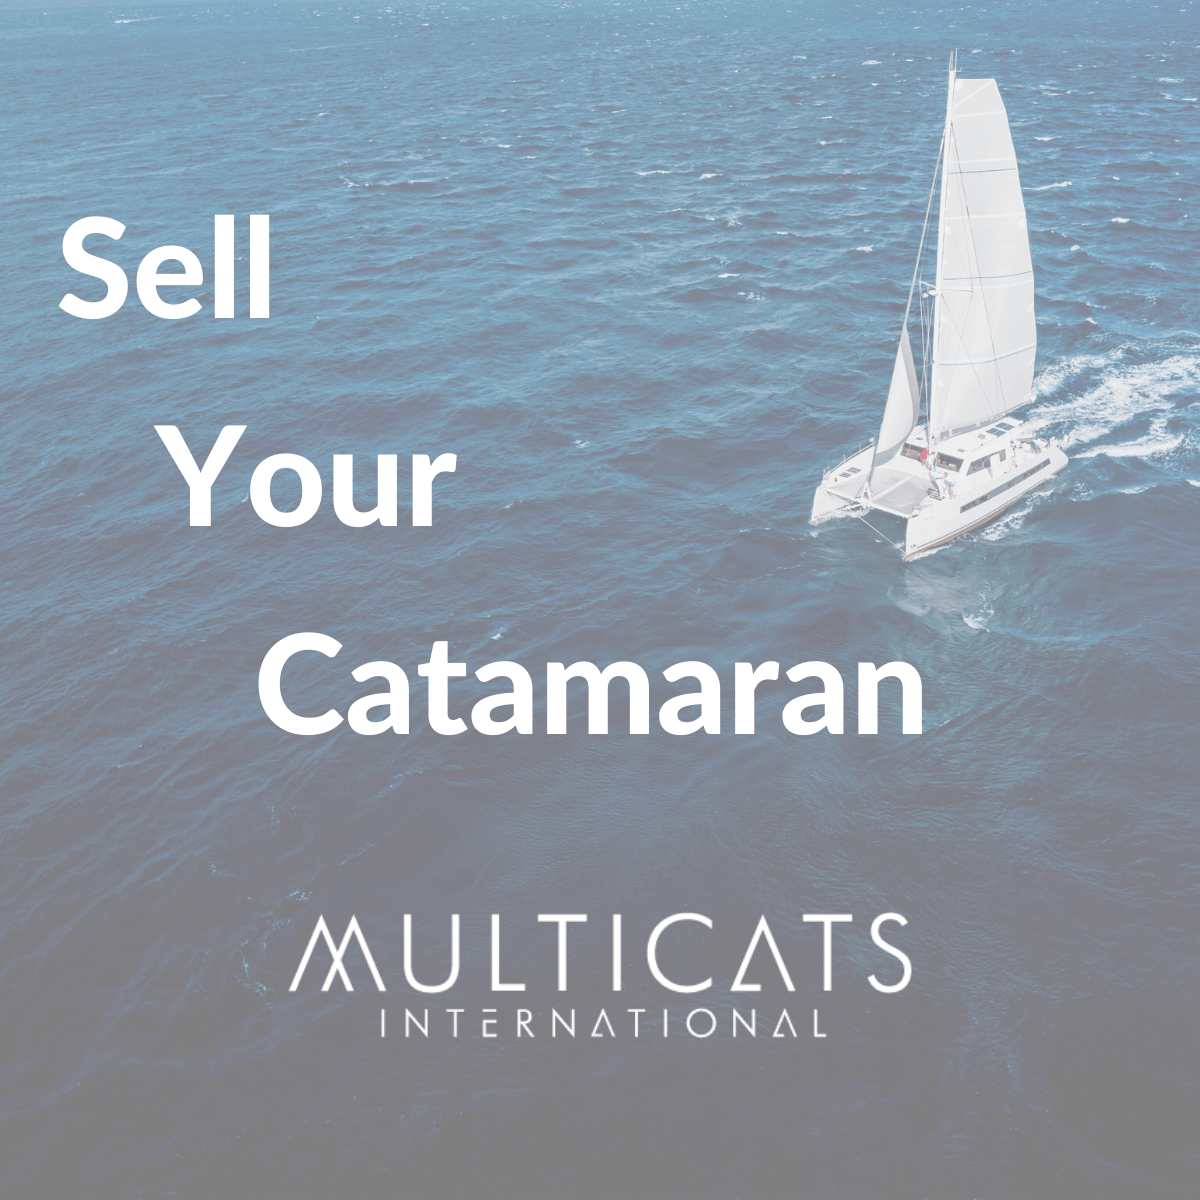 Tips on how to prepare your boat before selling it